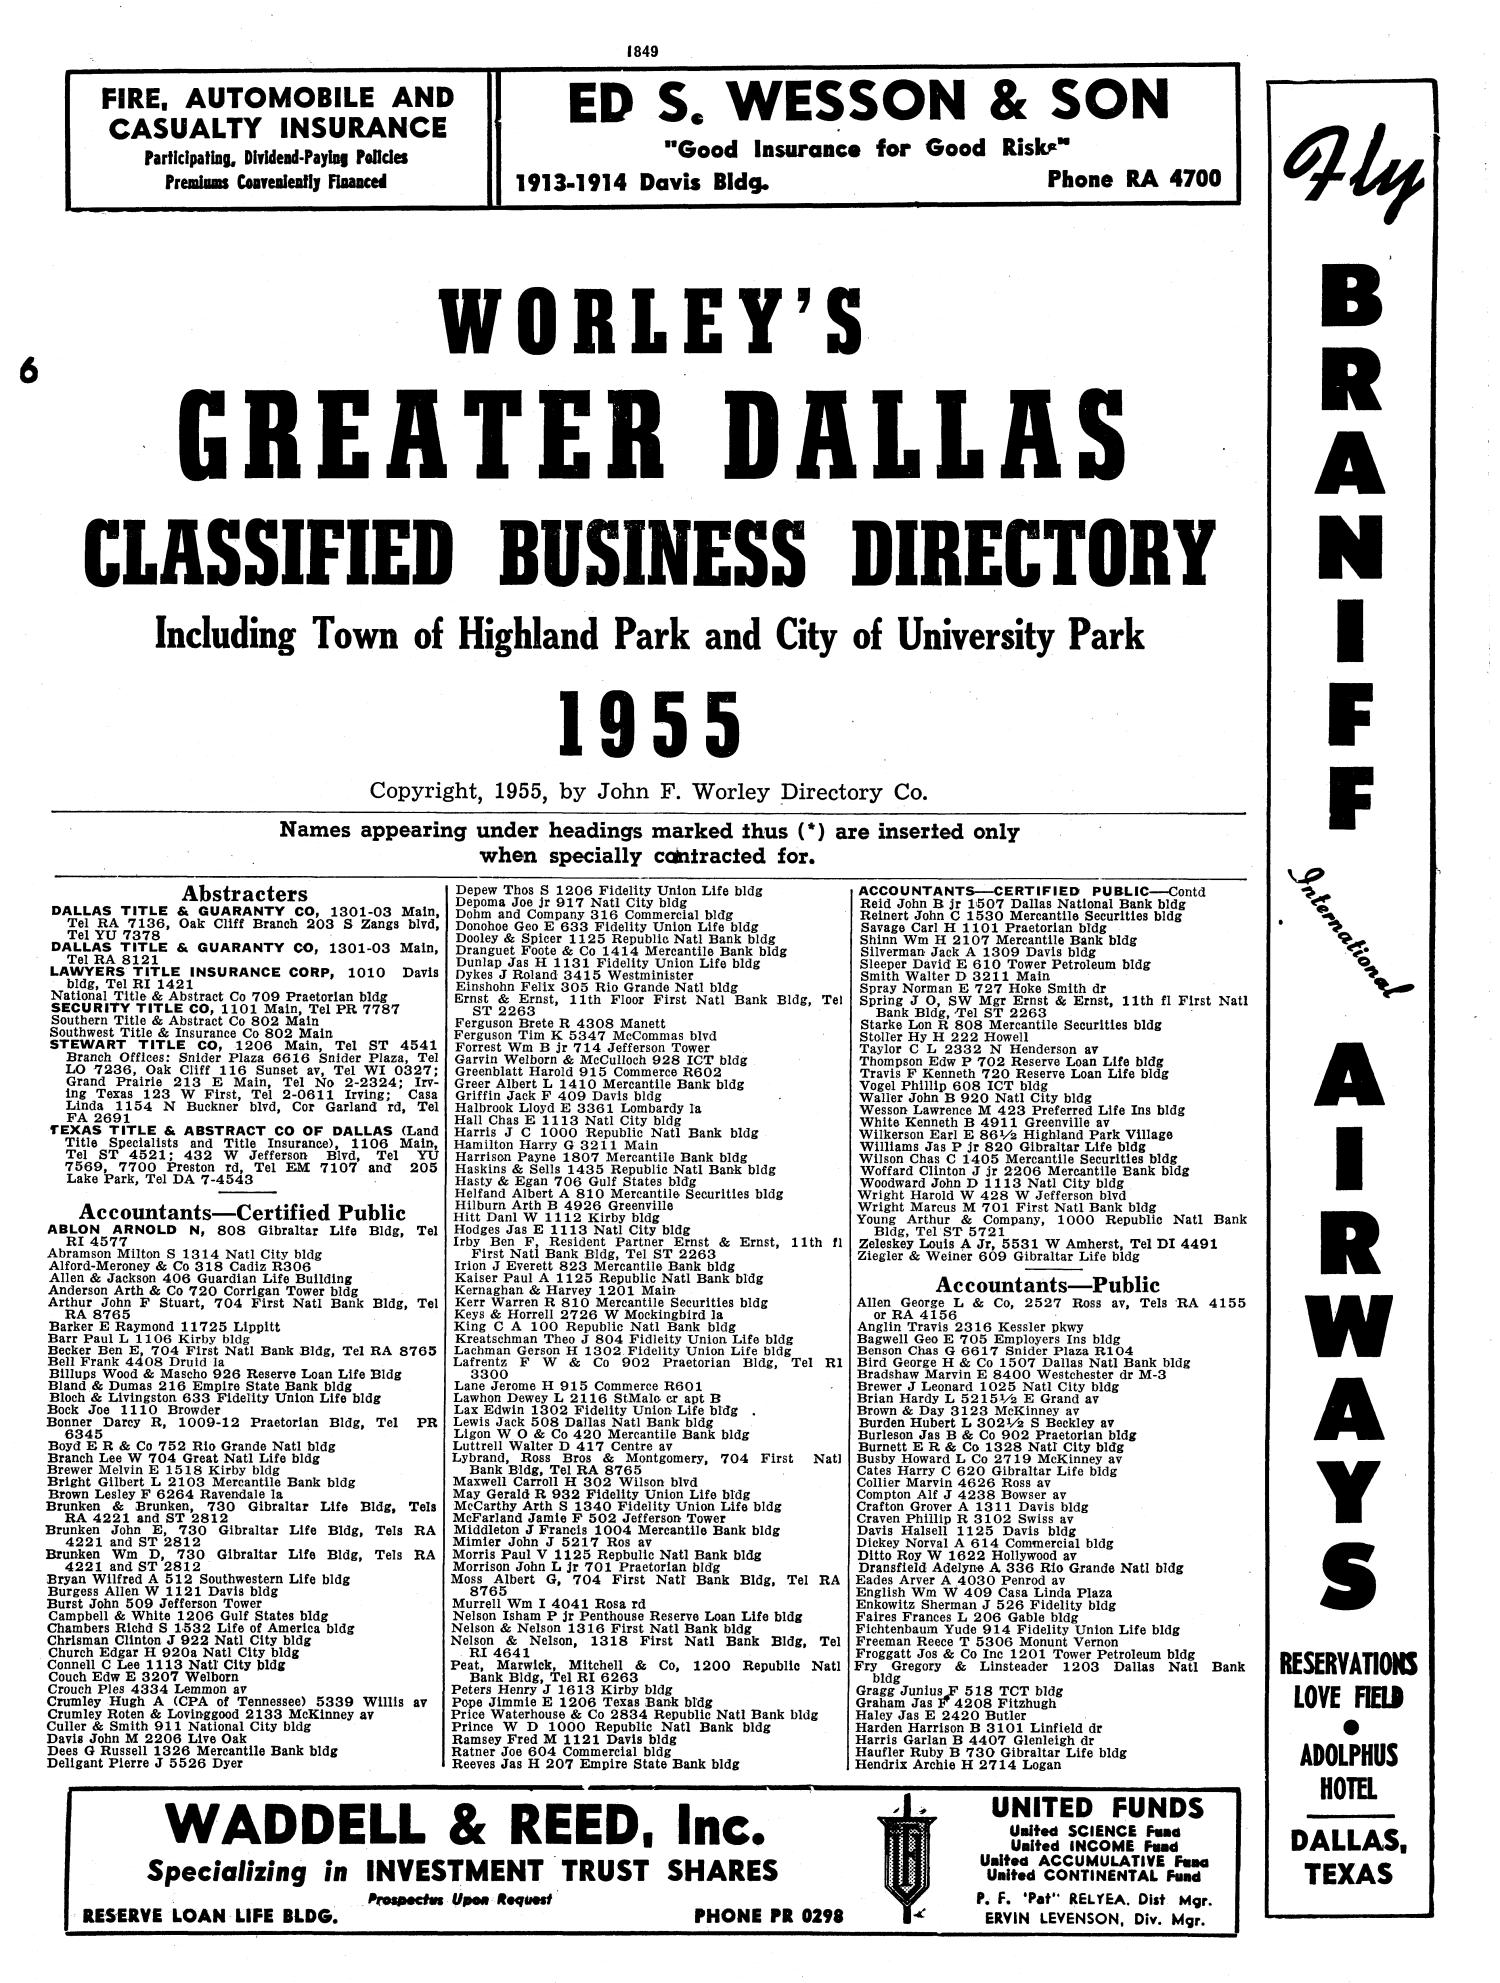 Dallas City Directory, 1955 - Page 1,849 - The Portal to Texas History